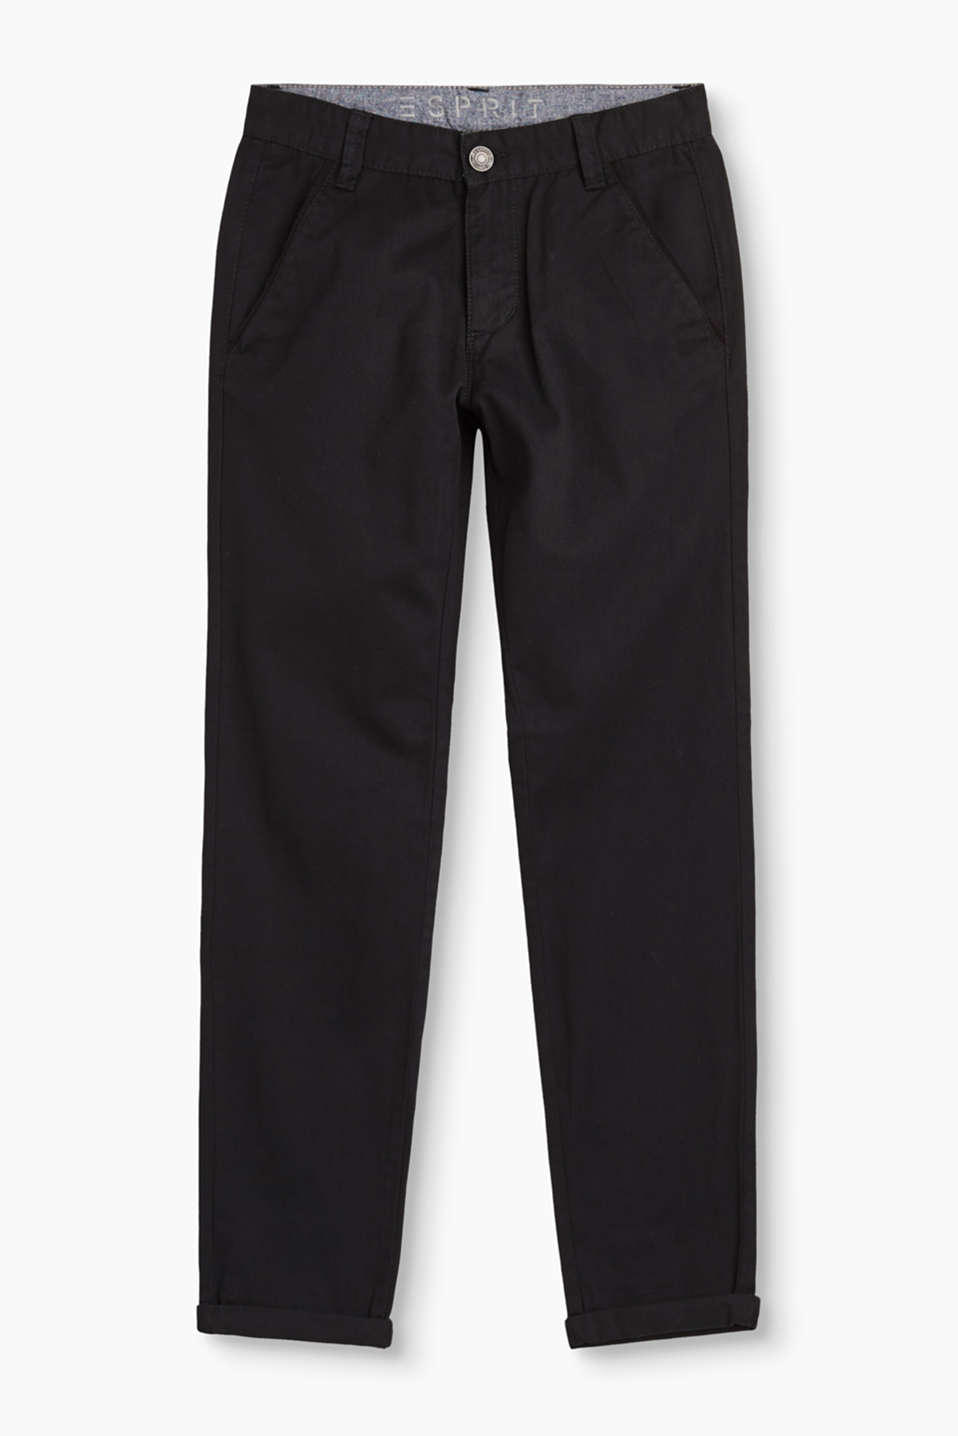 These trousers are a must for every wardrobe! Their minimalist design works with lots of looks.